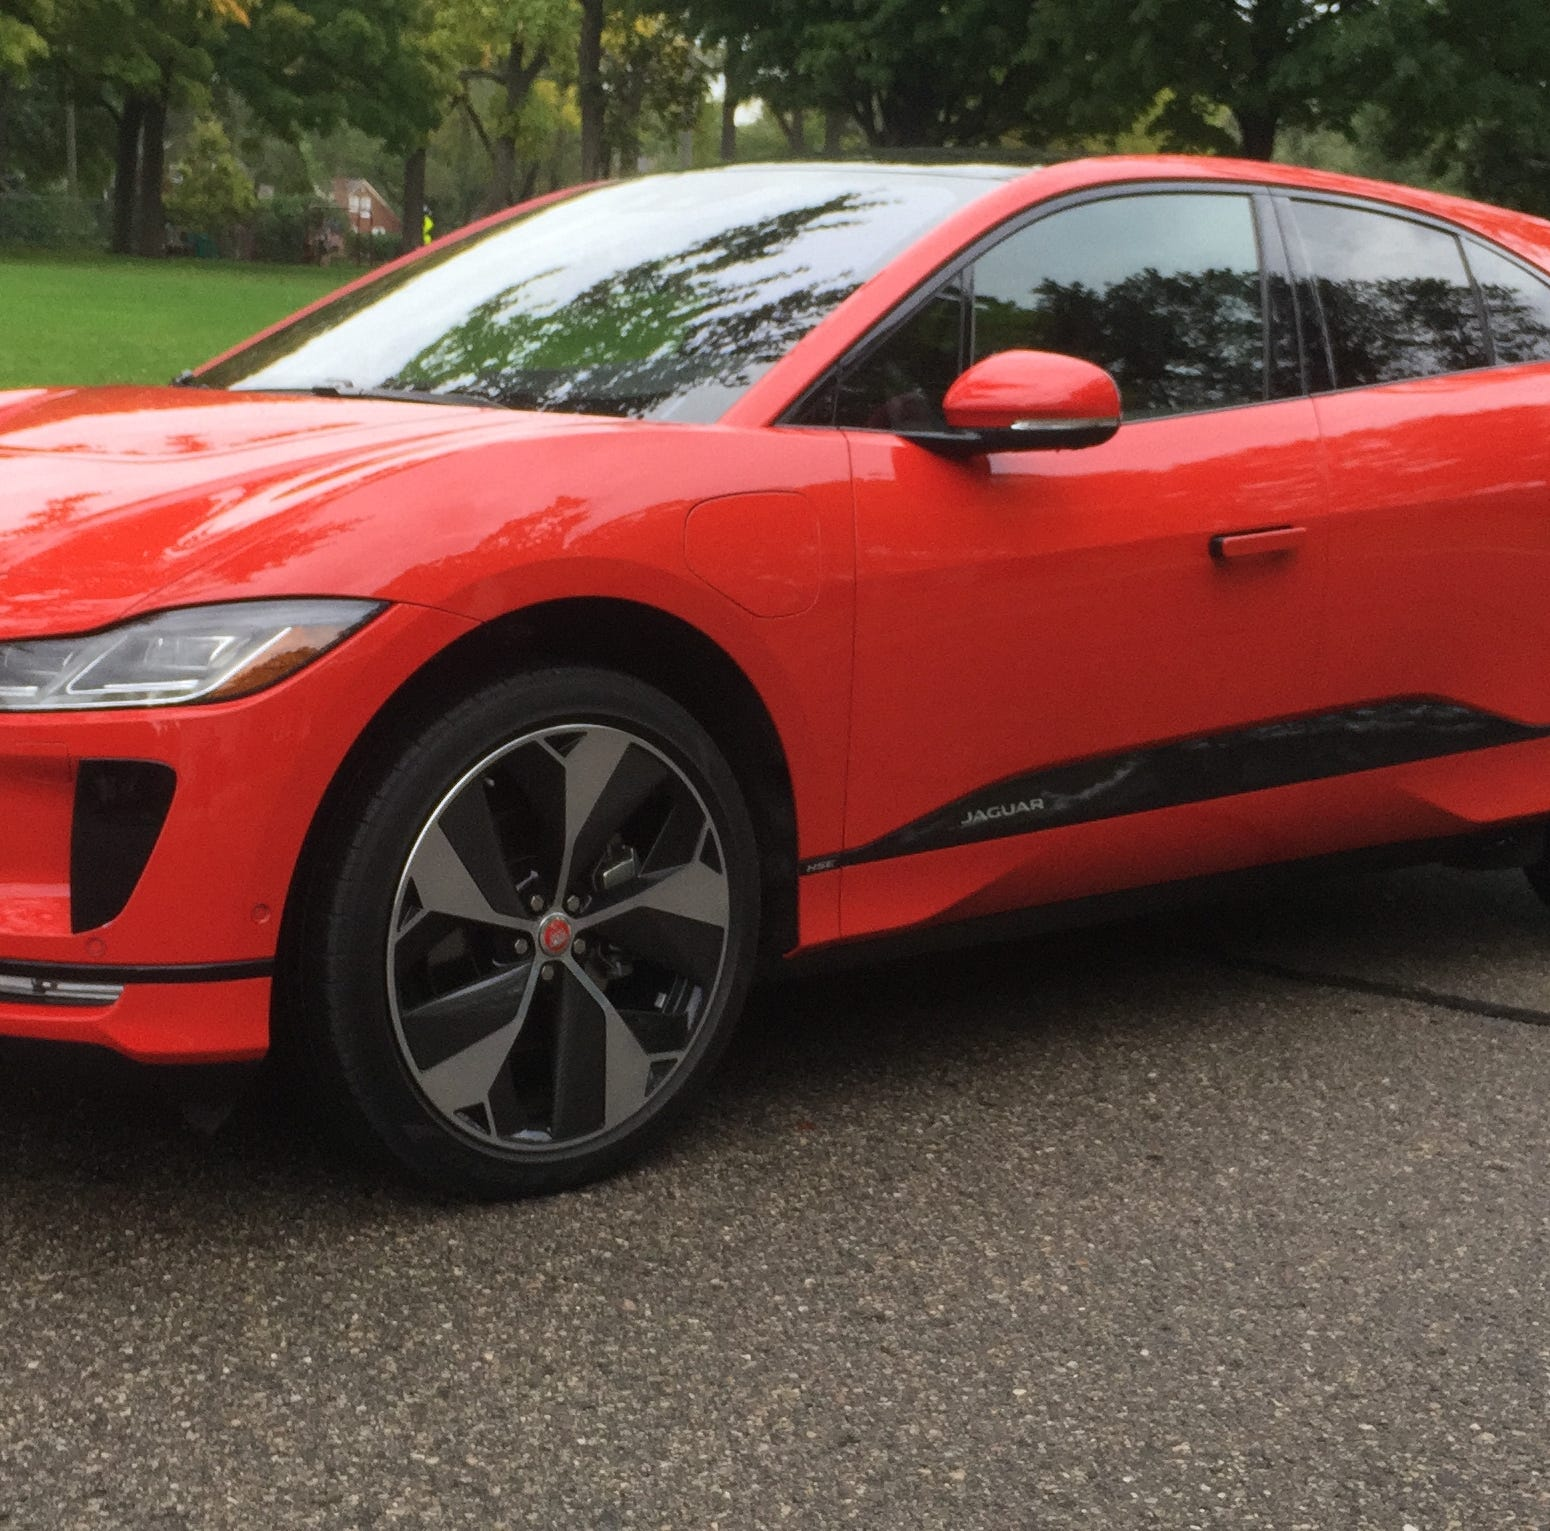 When is a good electric car not a good car? Meet the 2019 Jaguar I-Pace